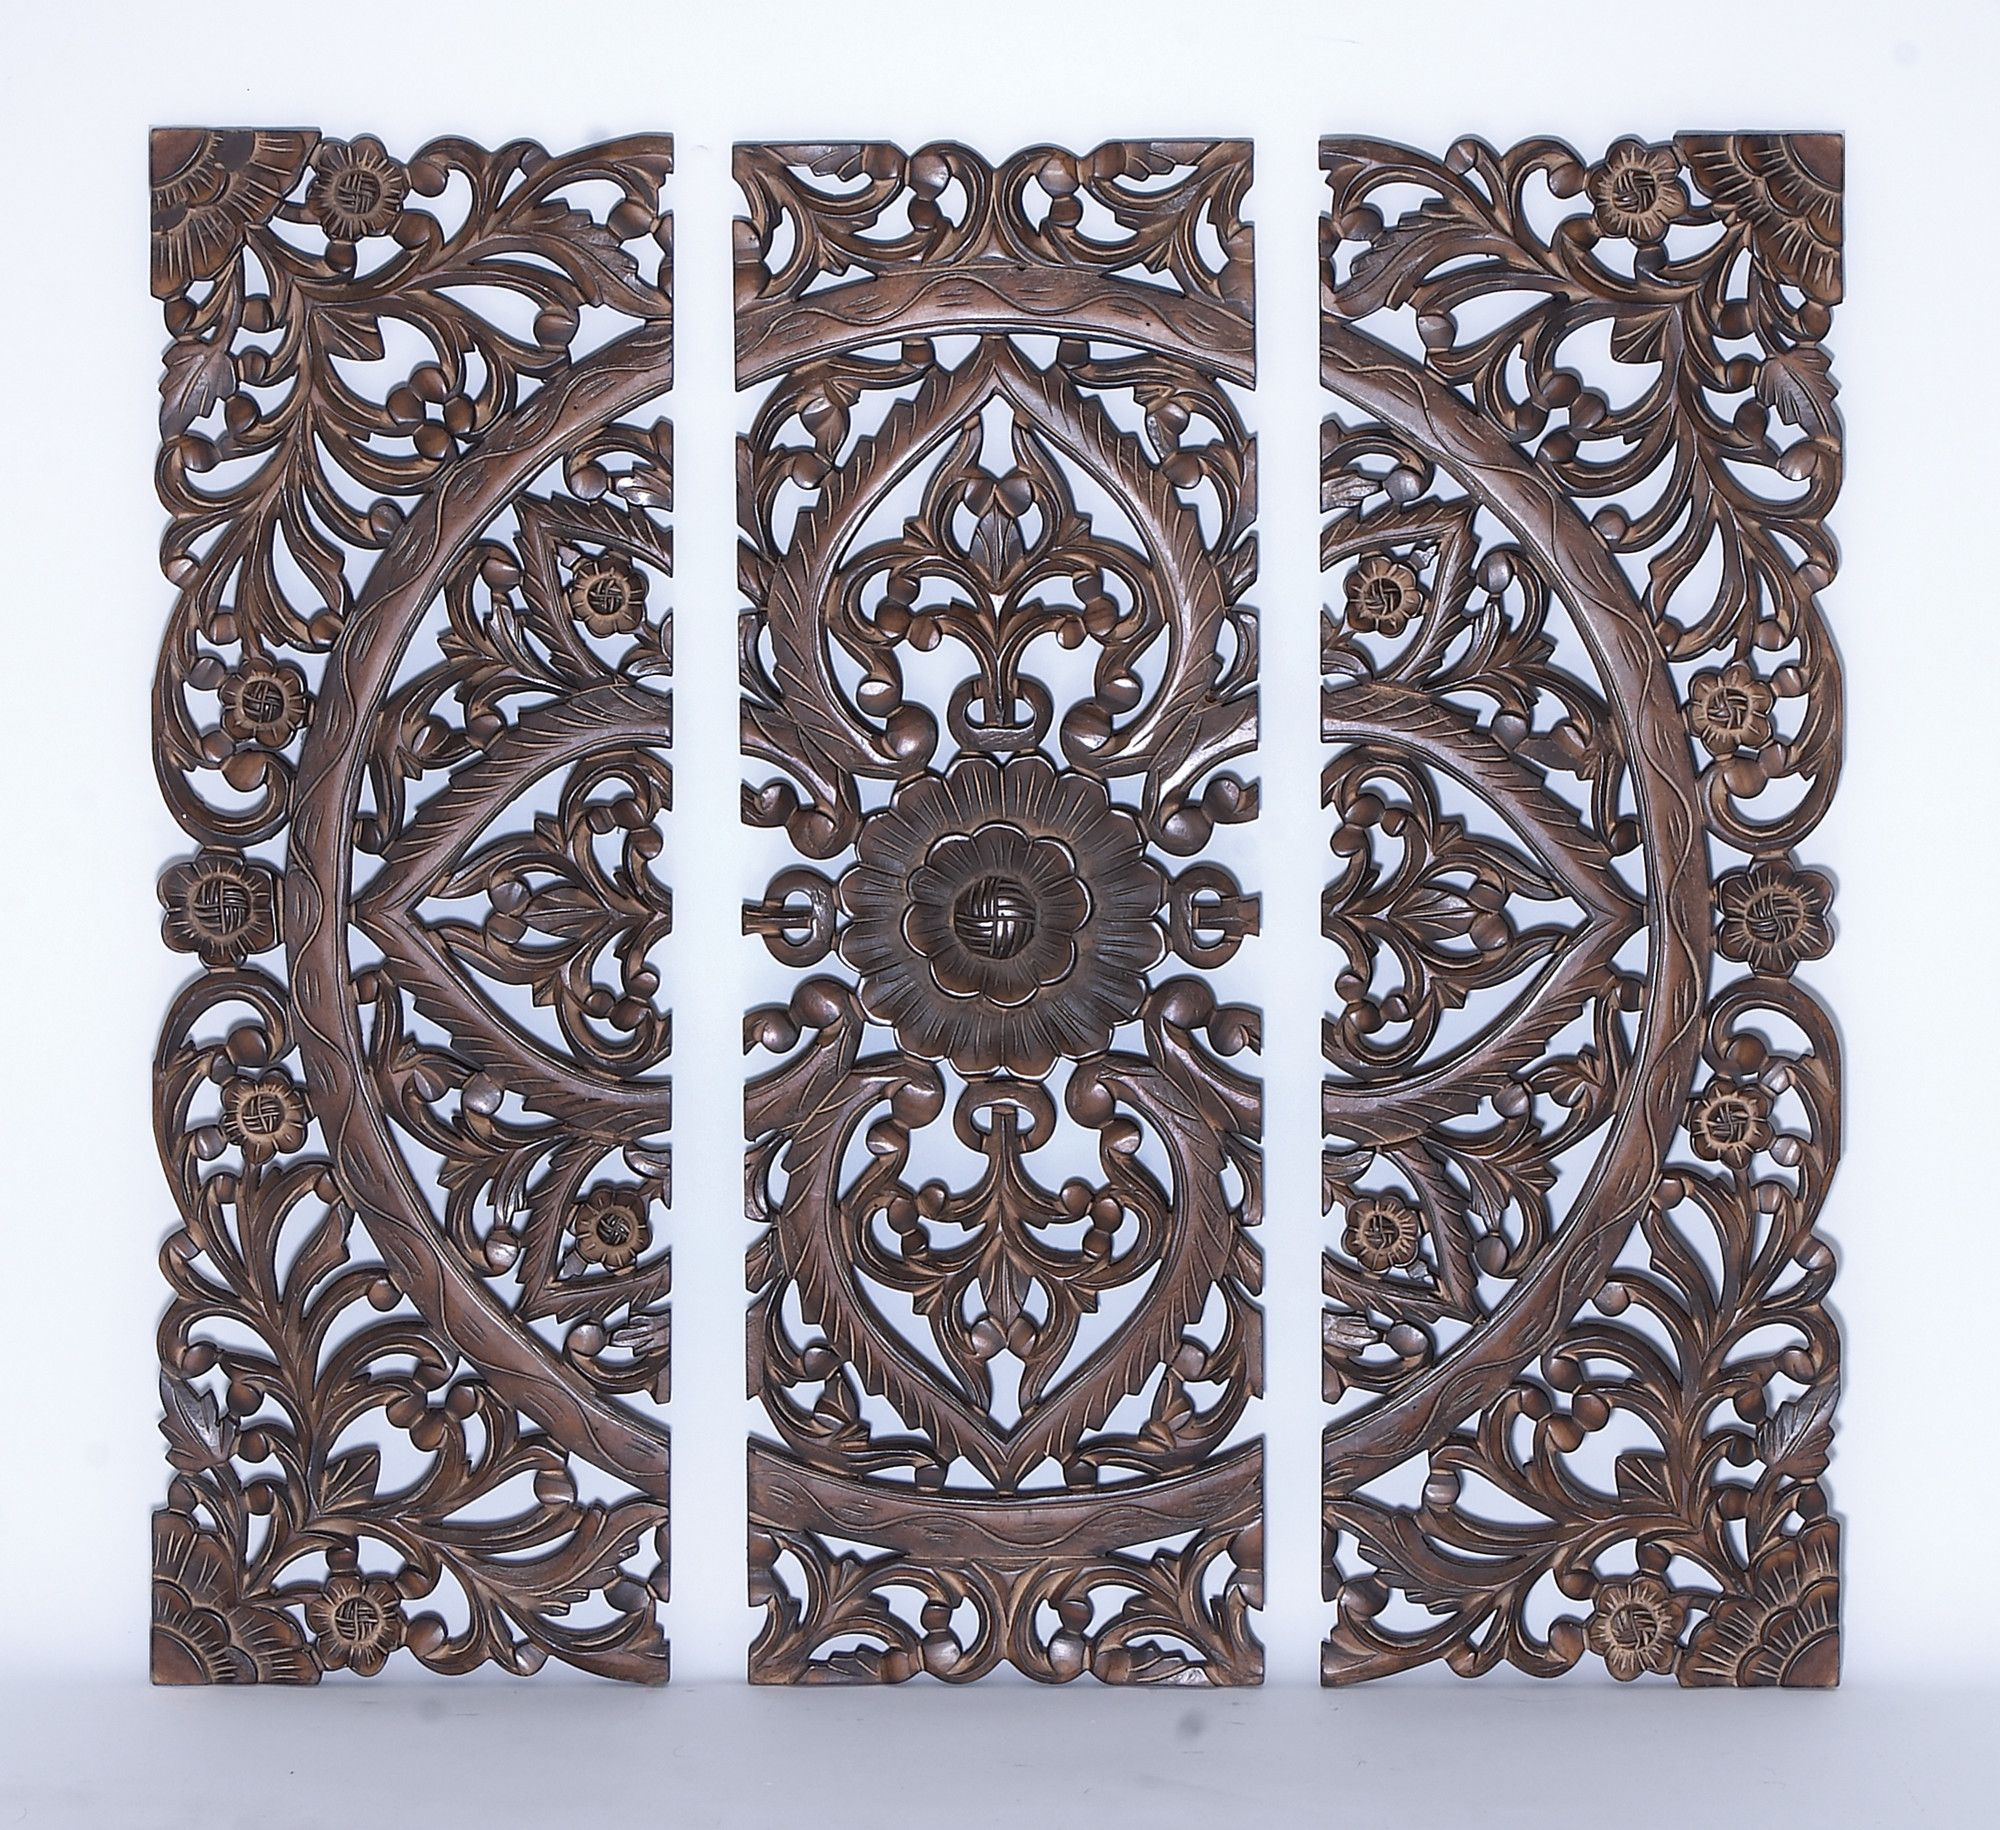 Woodland Imports 3 Piece Panel Wall Decor Set Deco Porte Deco Idees Pour La Maison